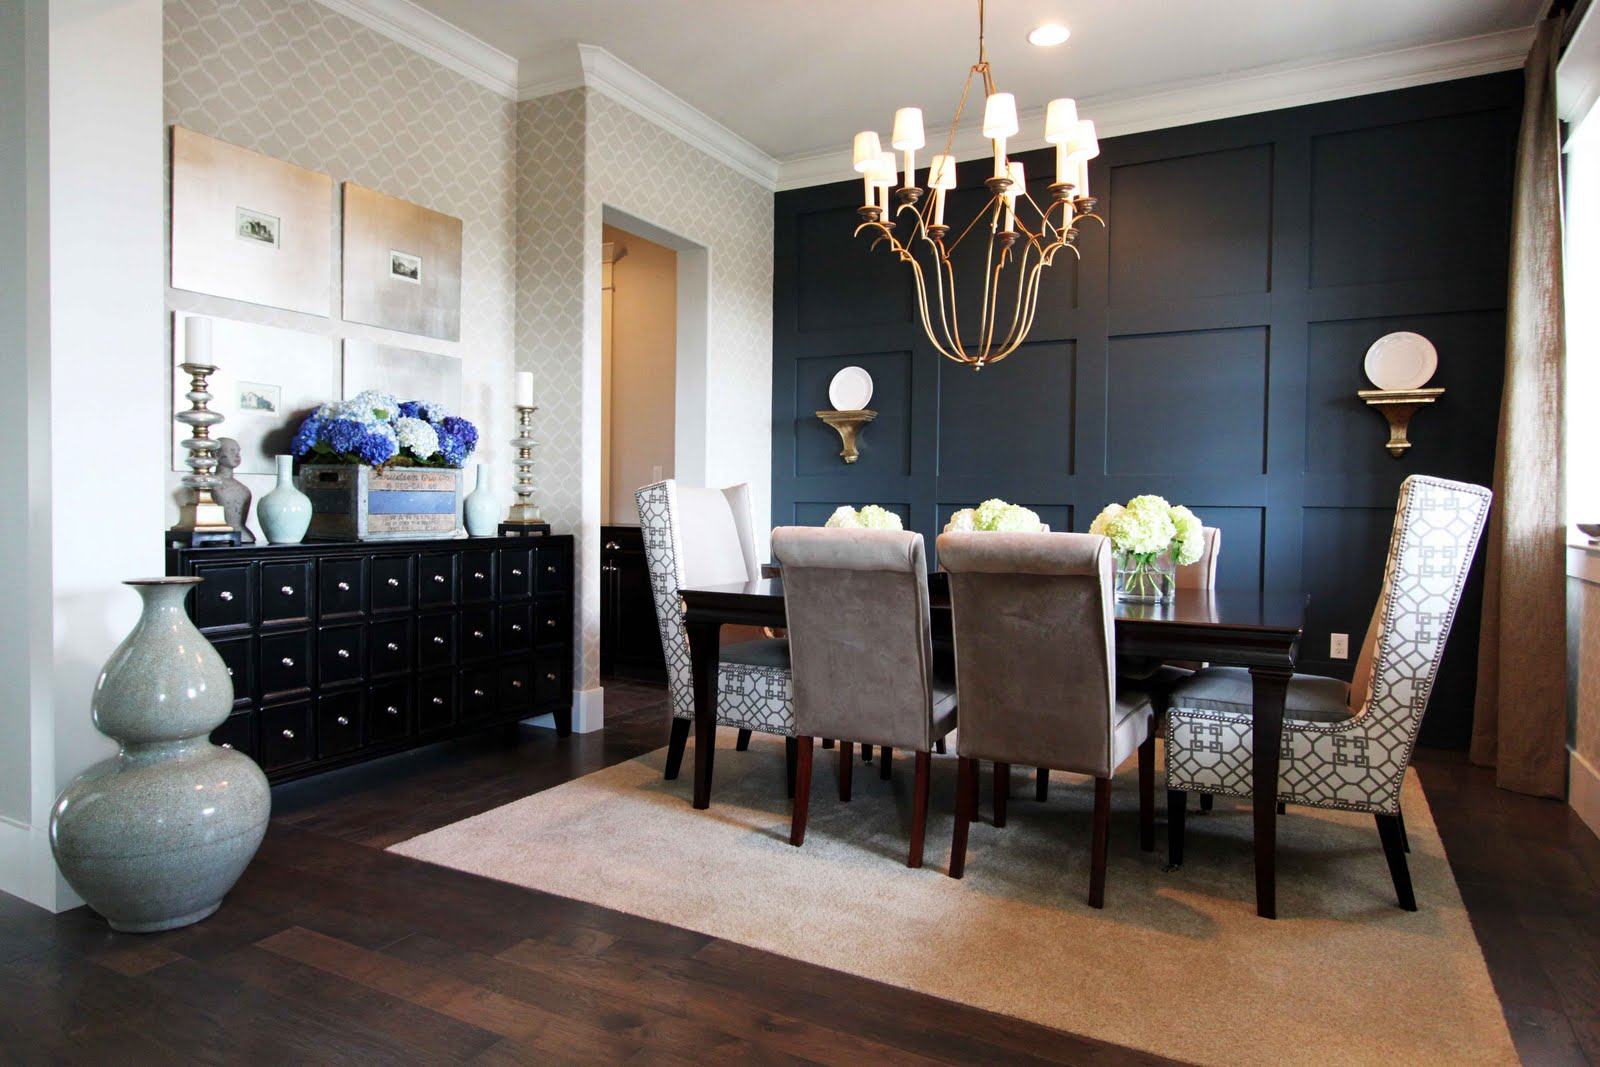 Stiles fischer interior design hgtv showhouse showdown for Dining room wall picture ideas